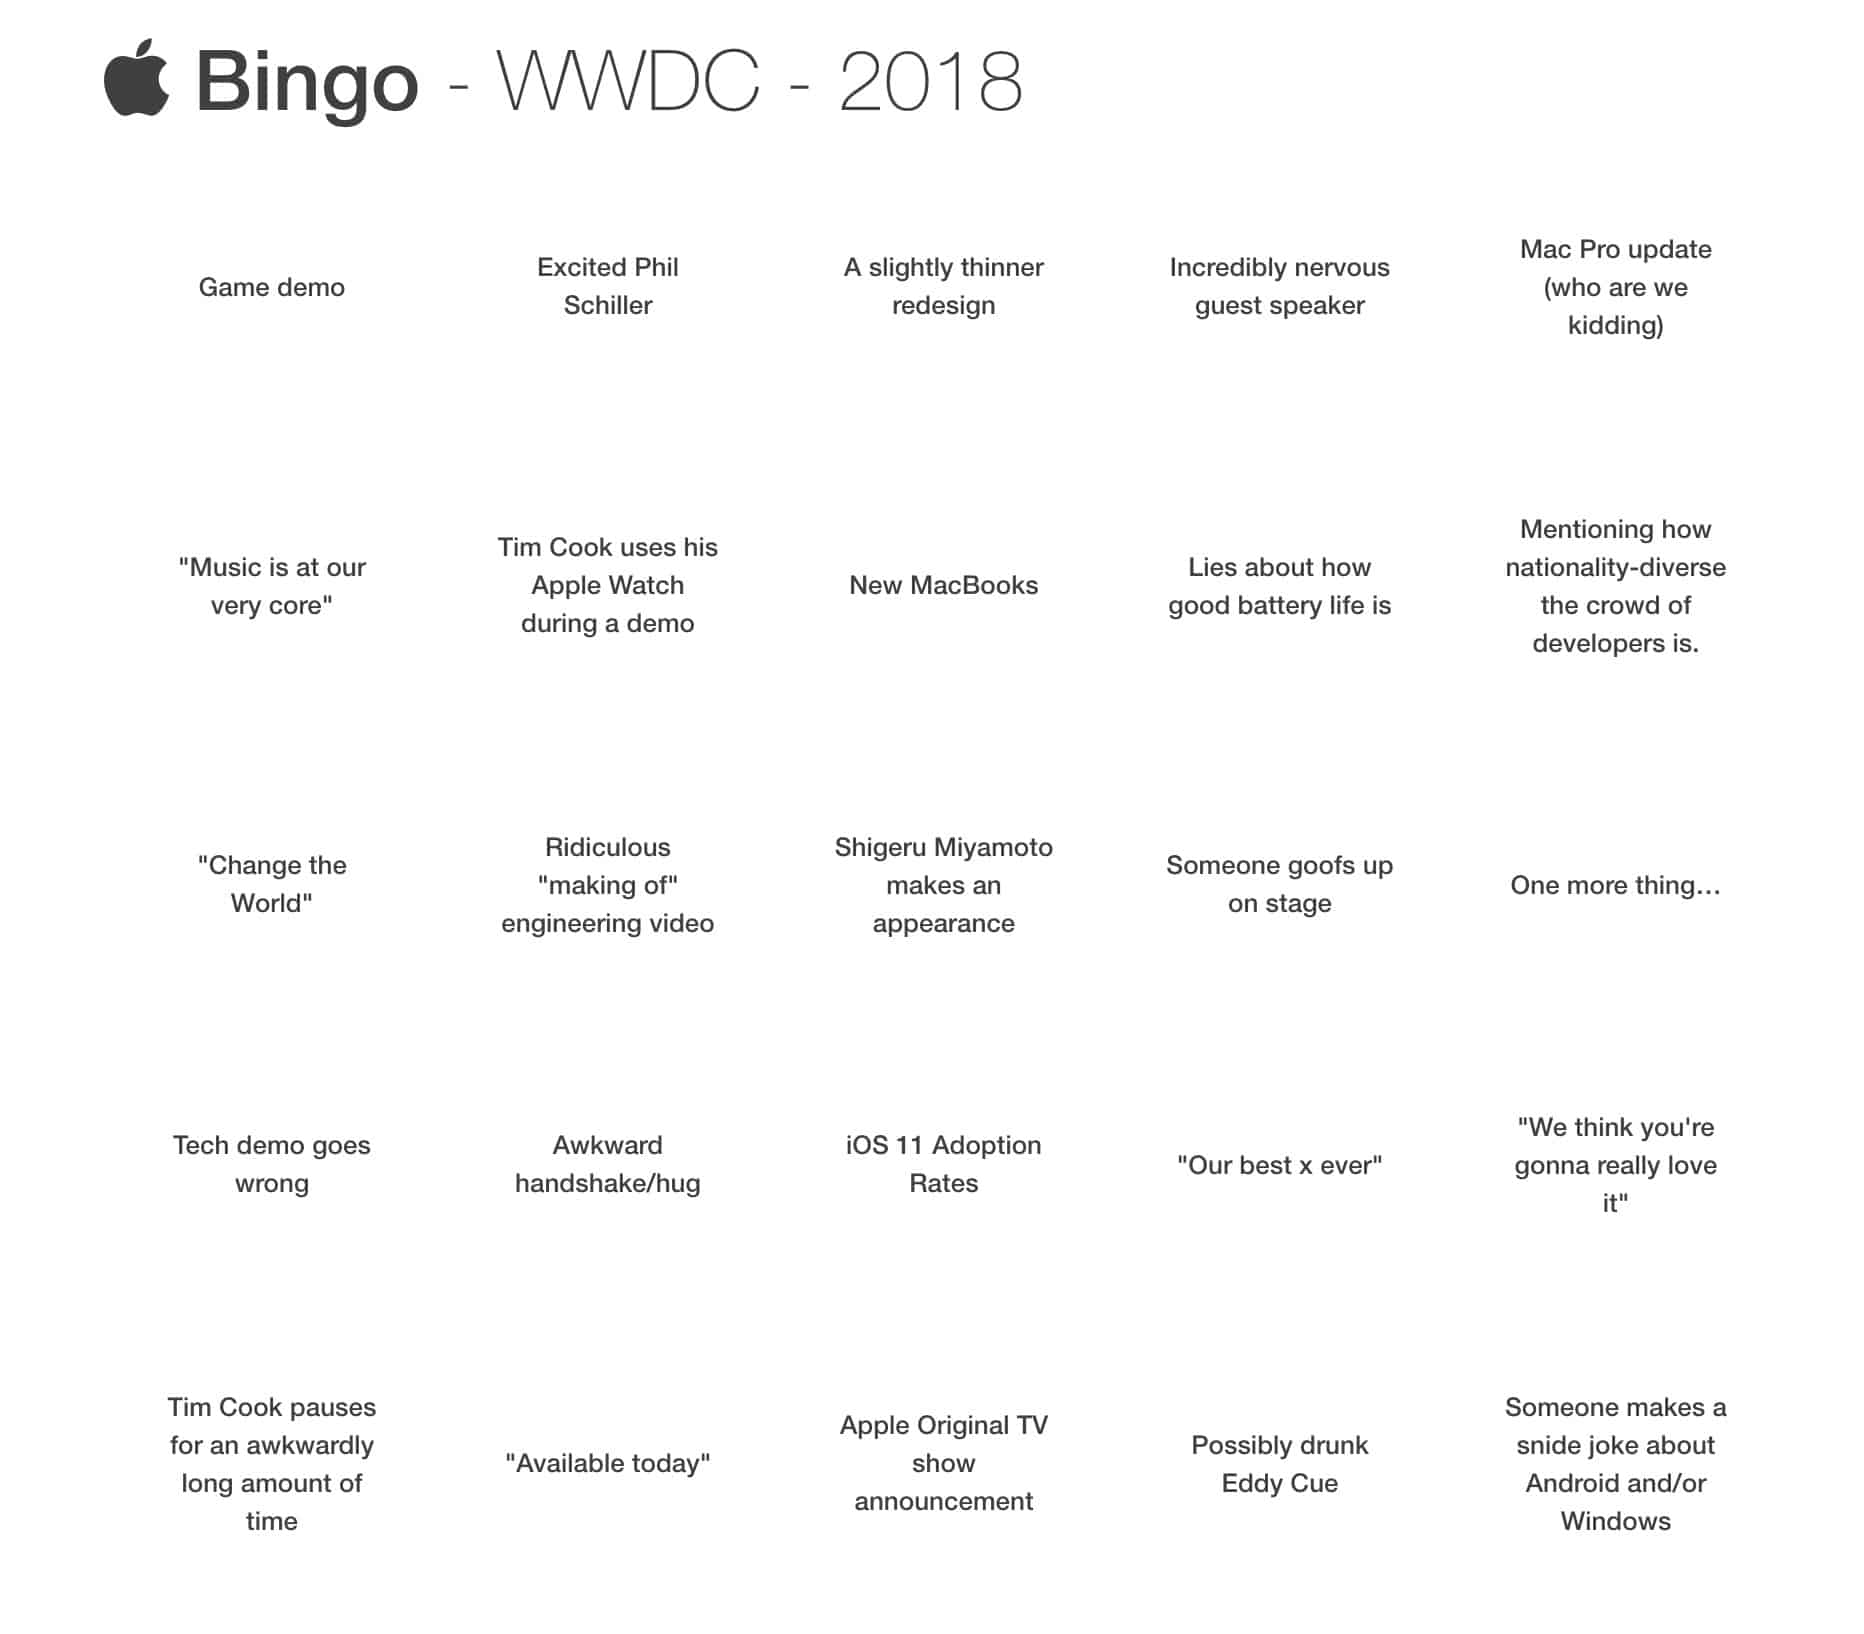 WWDC 2018 Not To Feature Any Major Hardware Announcements